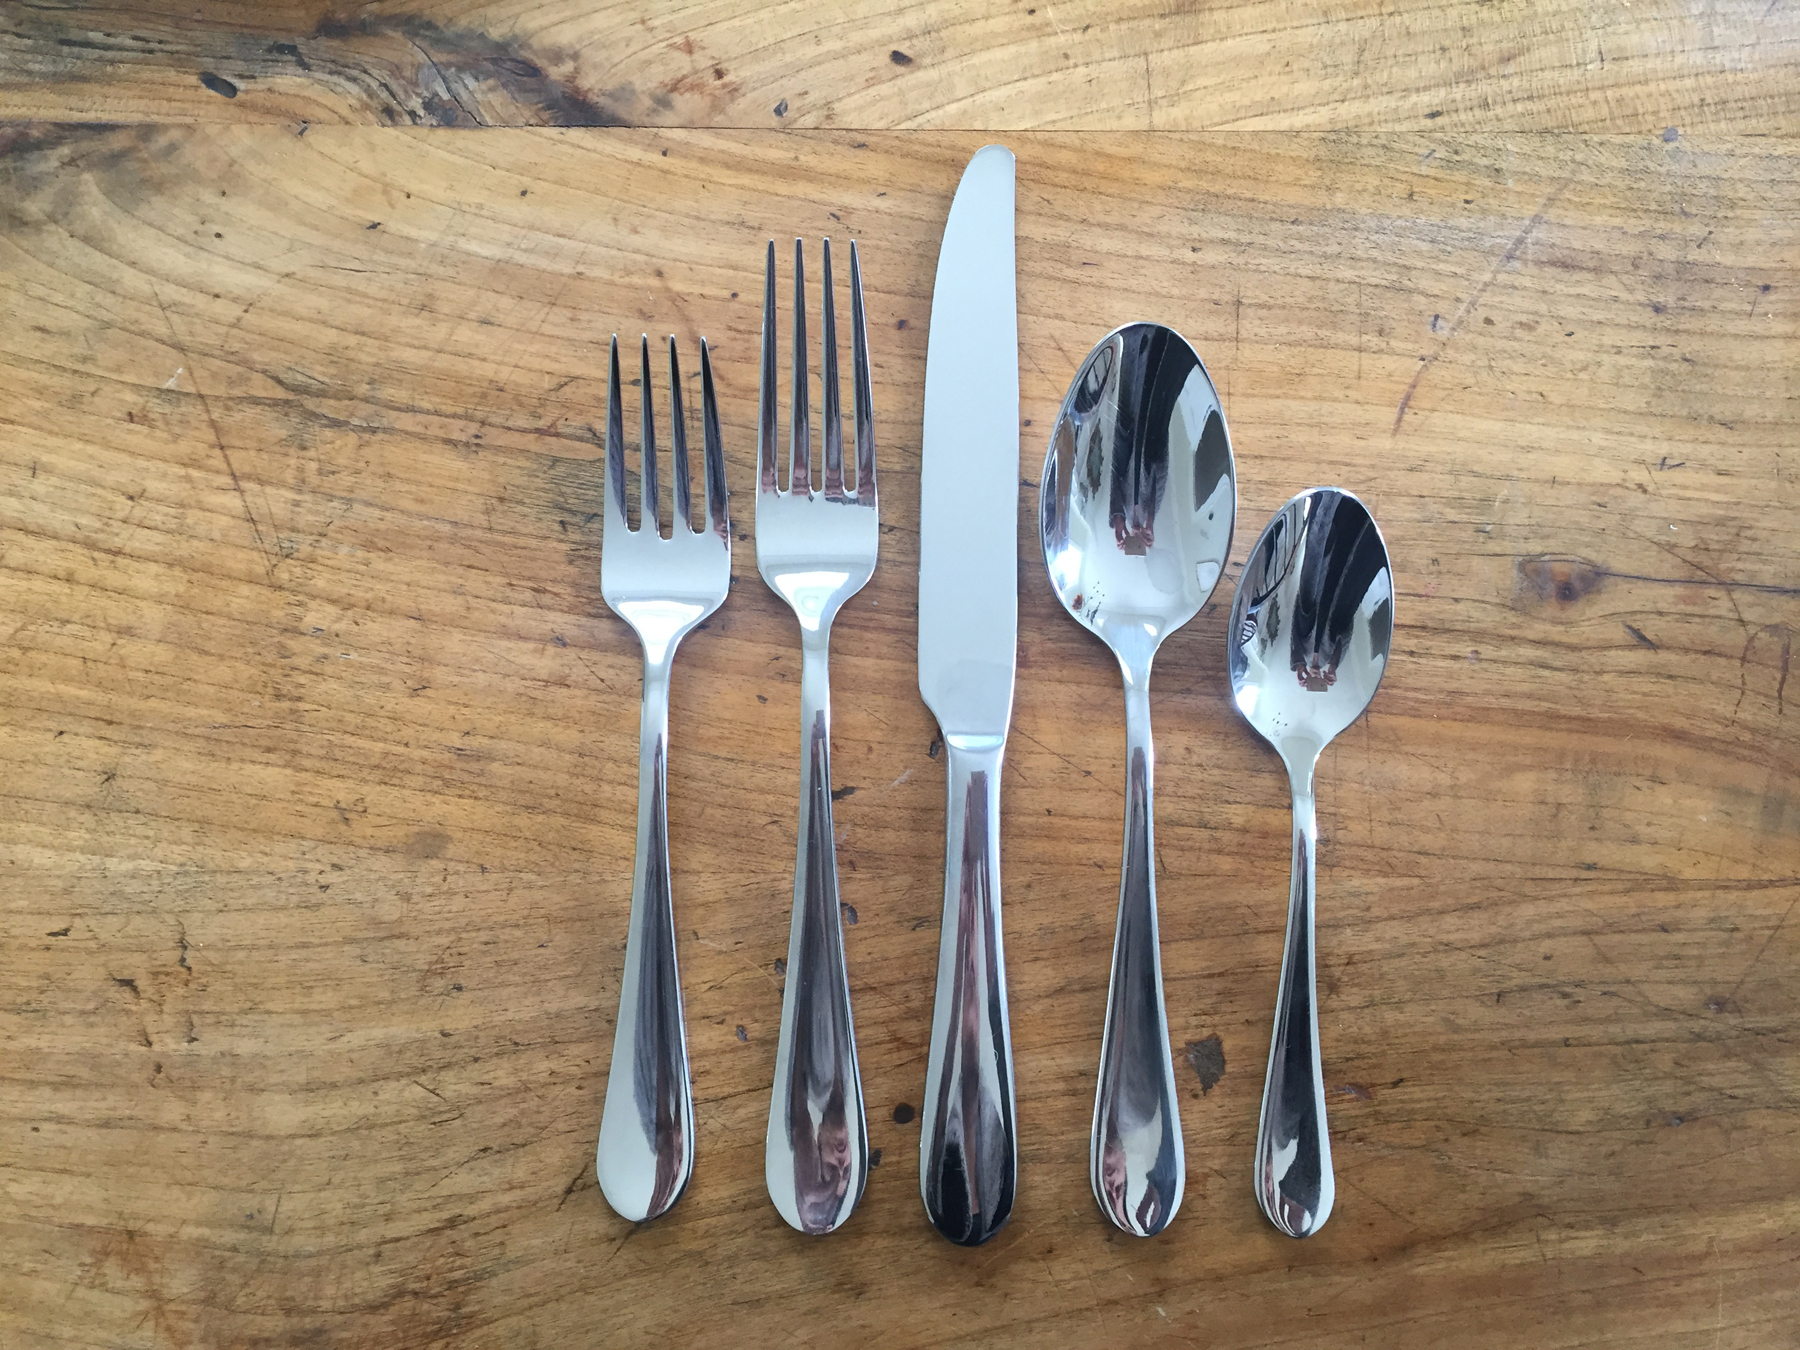 5 Piece Towle Silverware : Dinner fork, knife and spoon, dessert fork and tea/coffee spoon.  Fee: $3/set